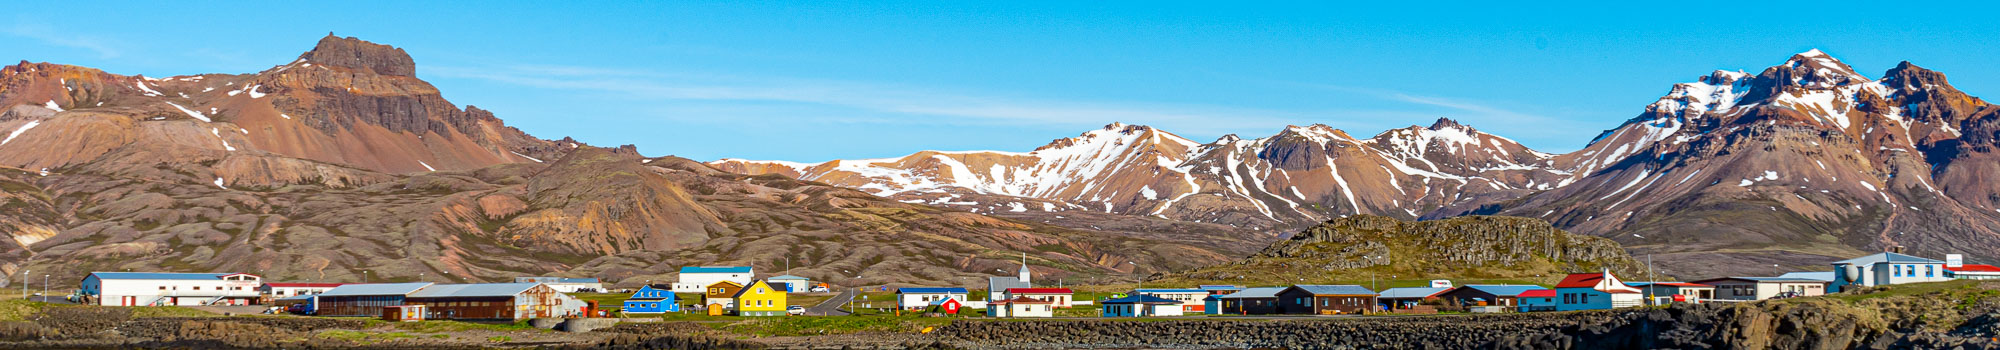 Eastfjords village landscape in Iceland